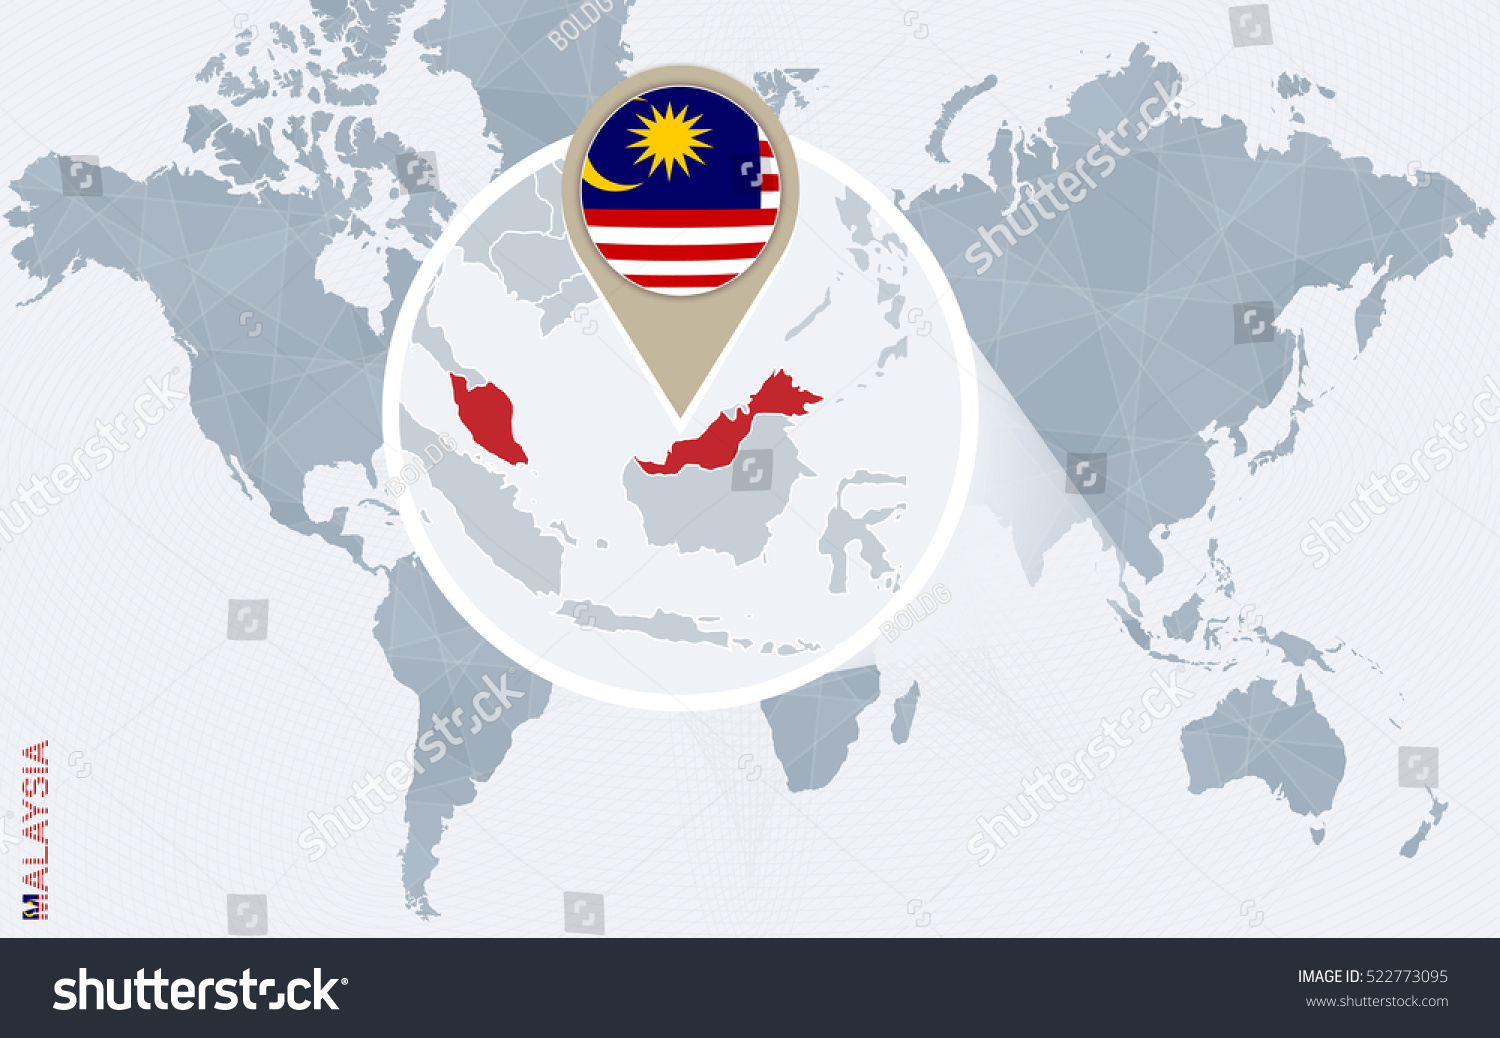 Abstract blue world map magnified malaysia stock illustration abstract blue world map with magnified malaysia malaysia flag and map rater copy gumiabroncs Choice Image